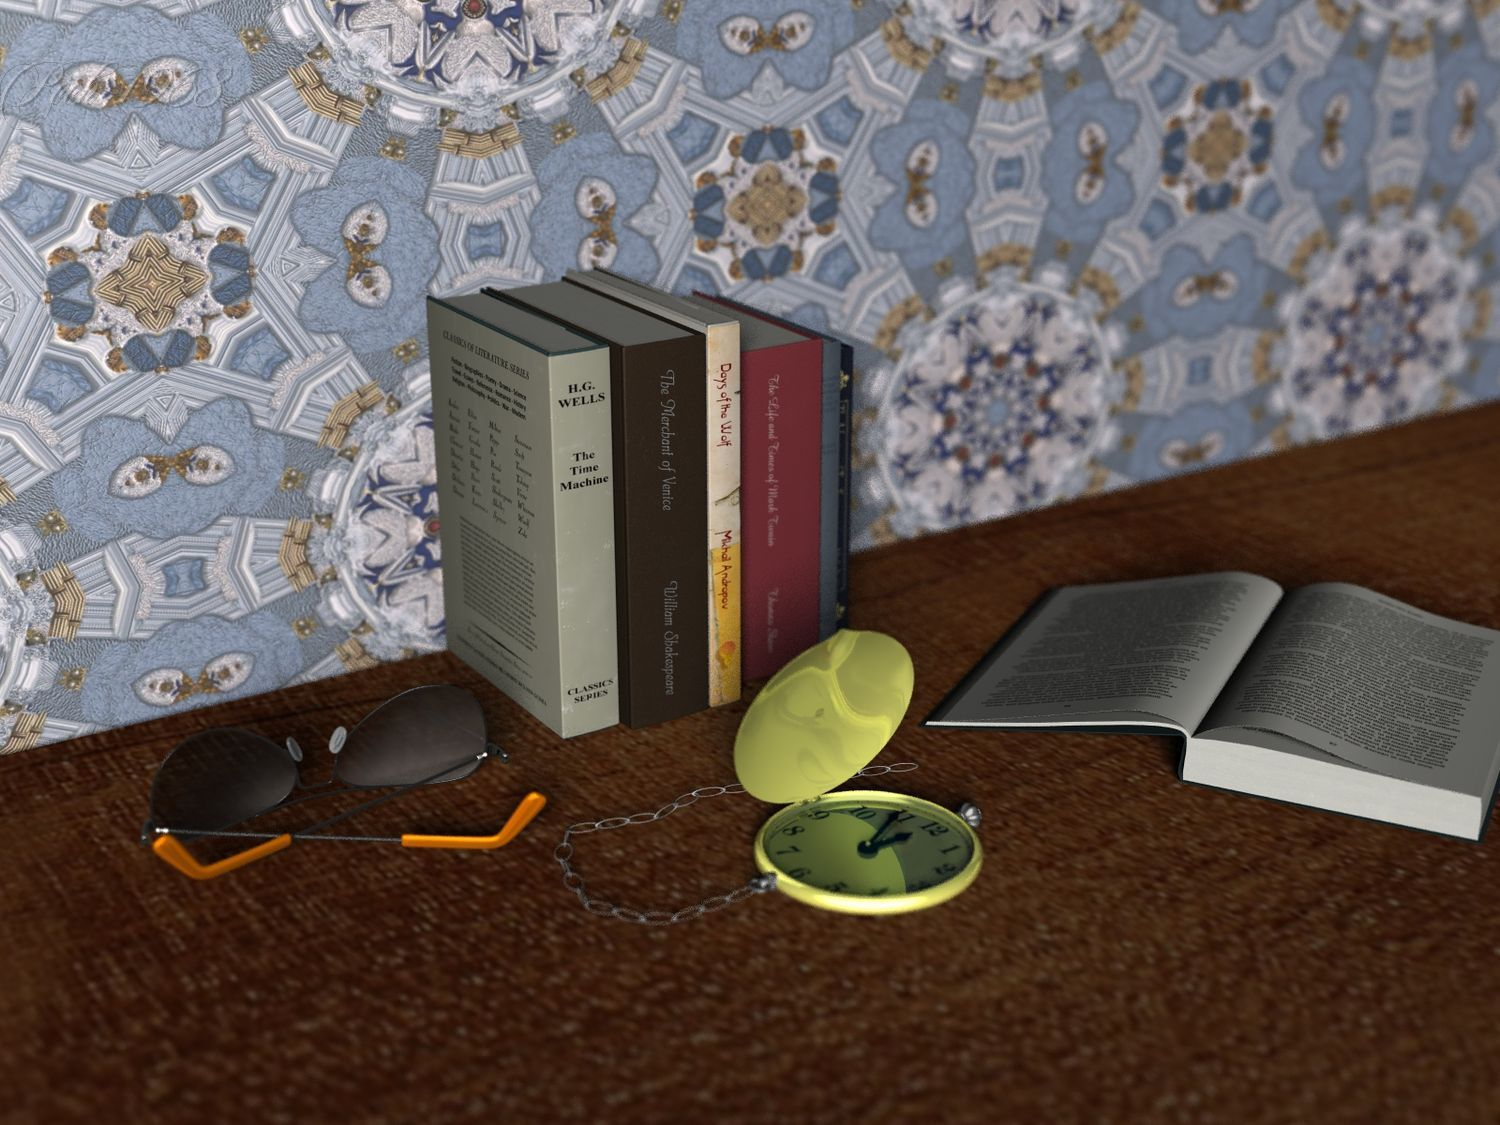 The Books, the glasses and the pocket watches